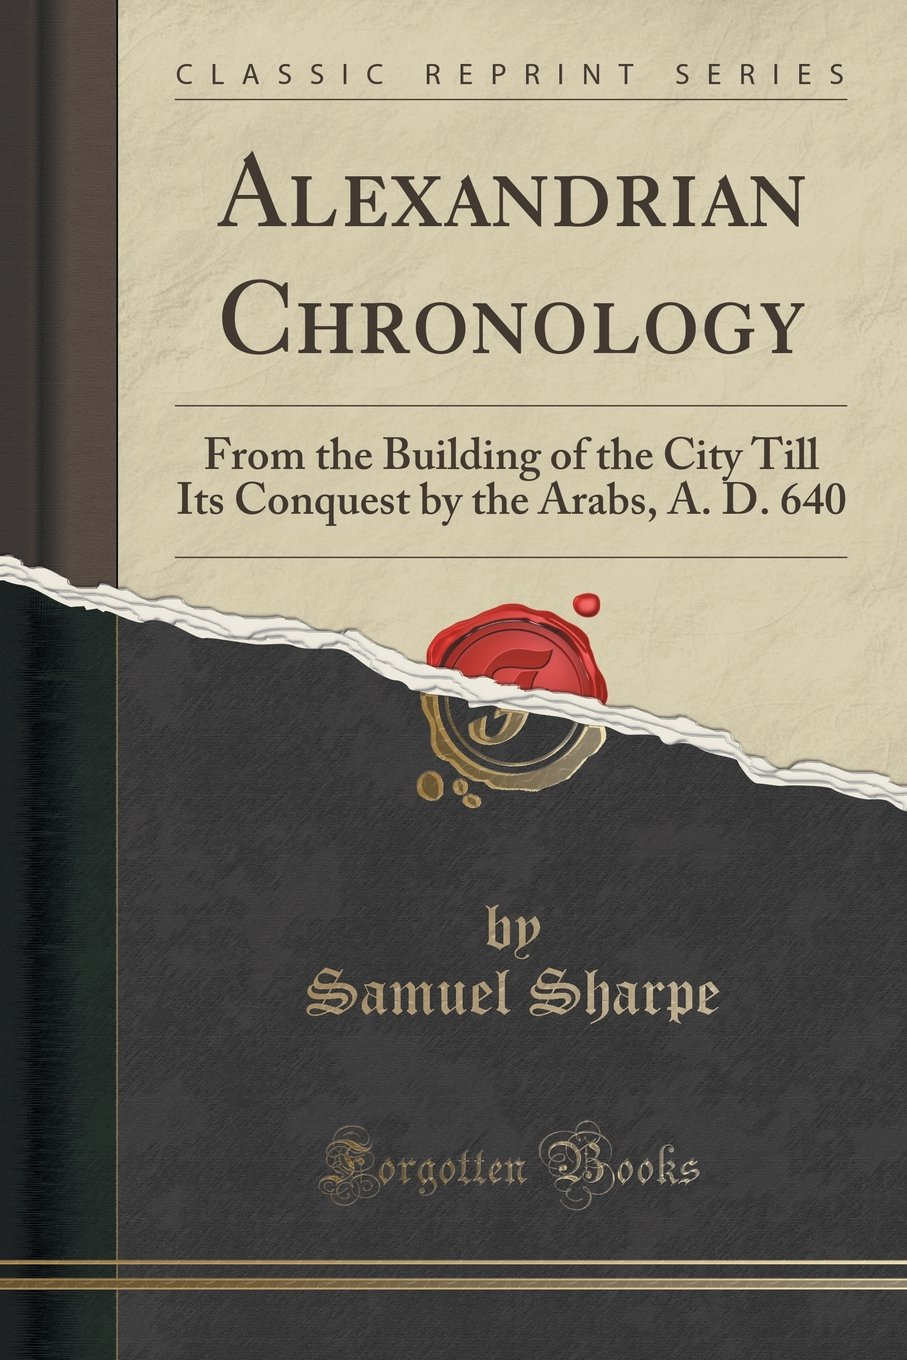 Alexandrian Chronology: From the Building of the City Till Its Conquest by the Arabs, A. D. 640 (Classic Reprint)